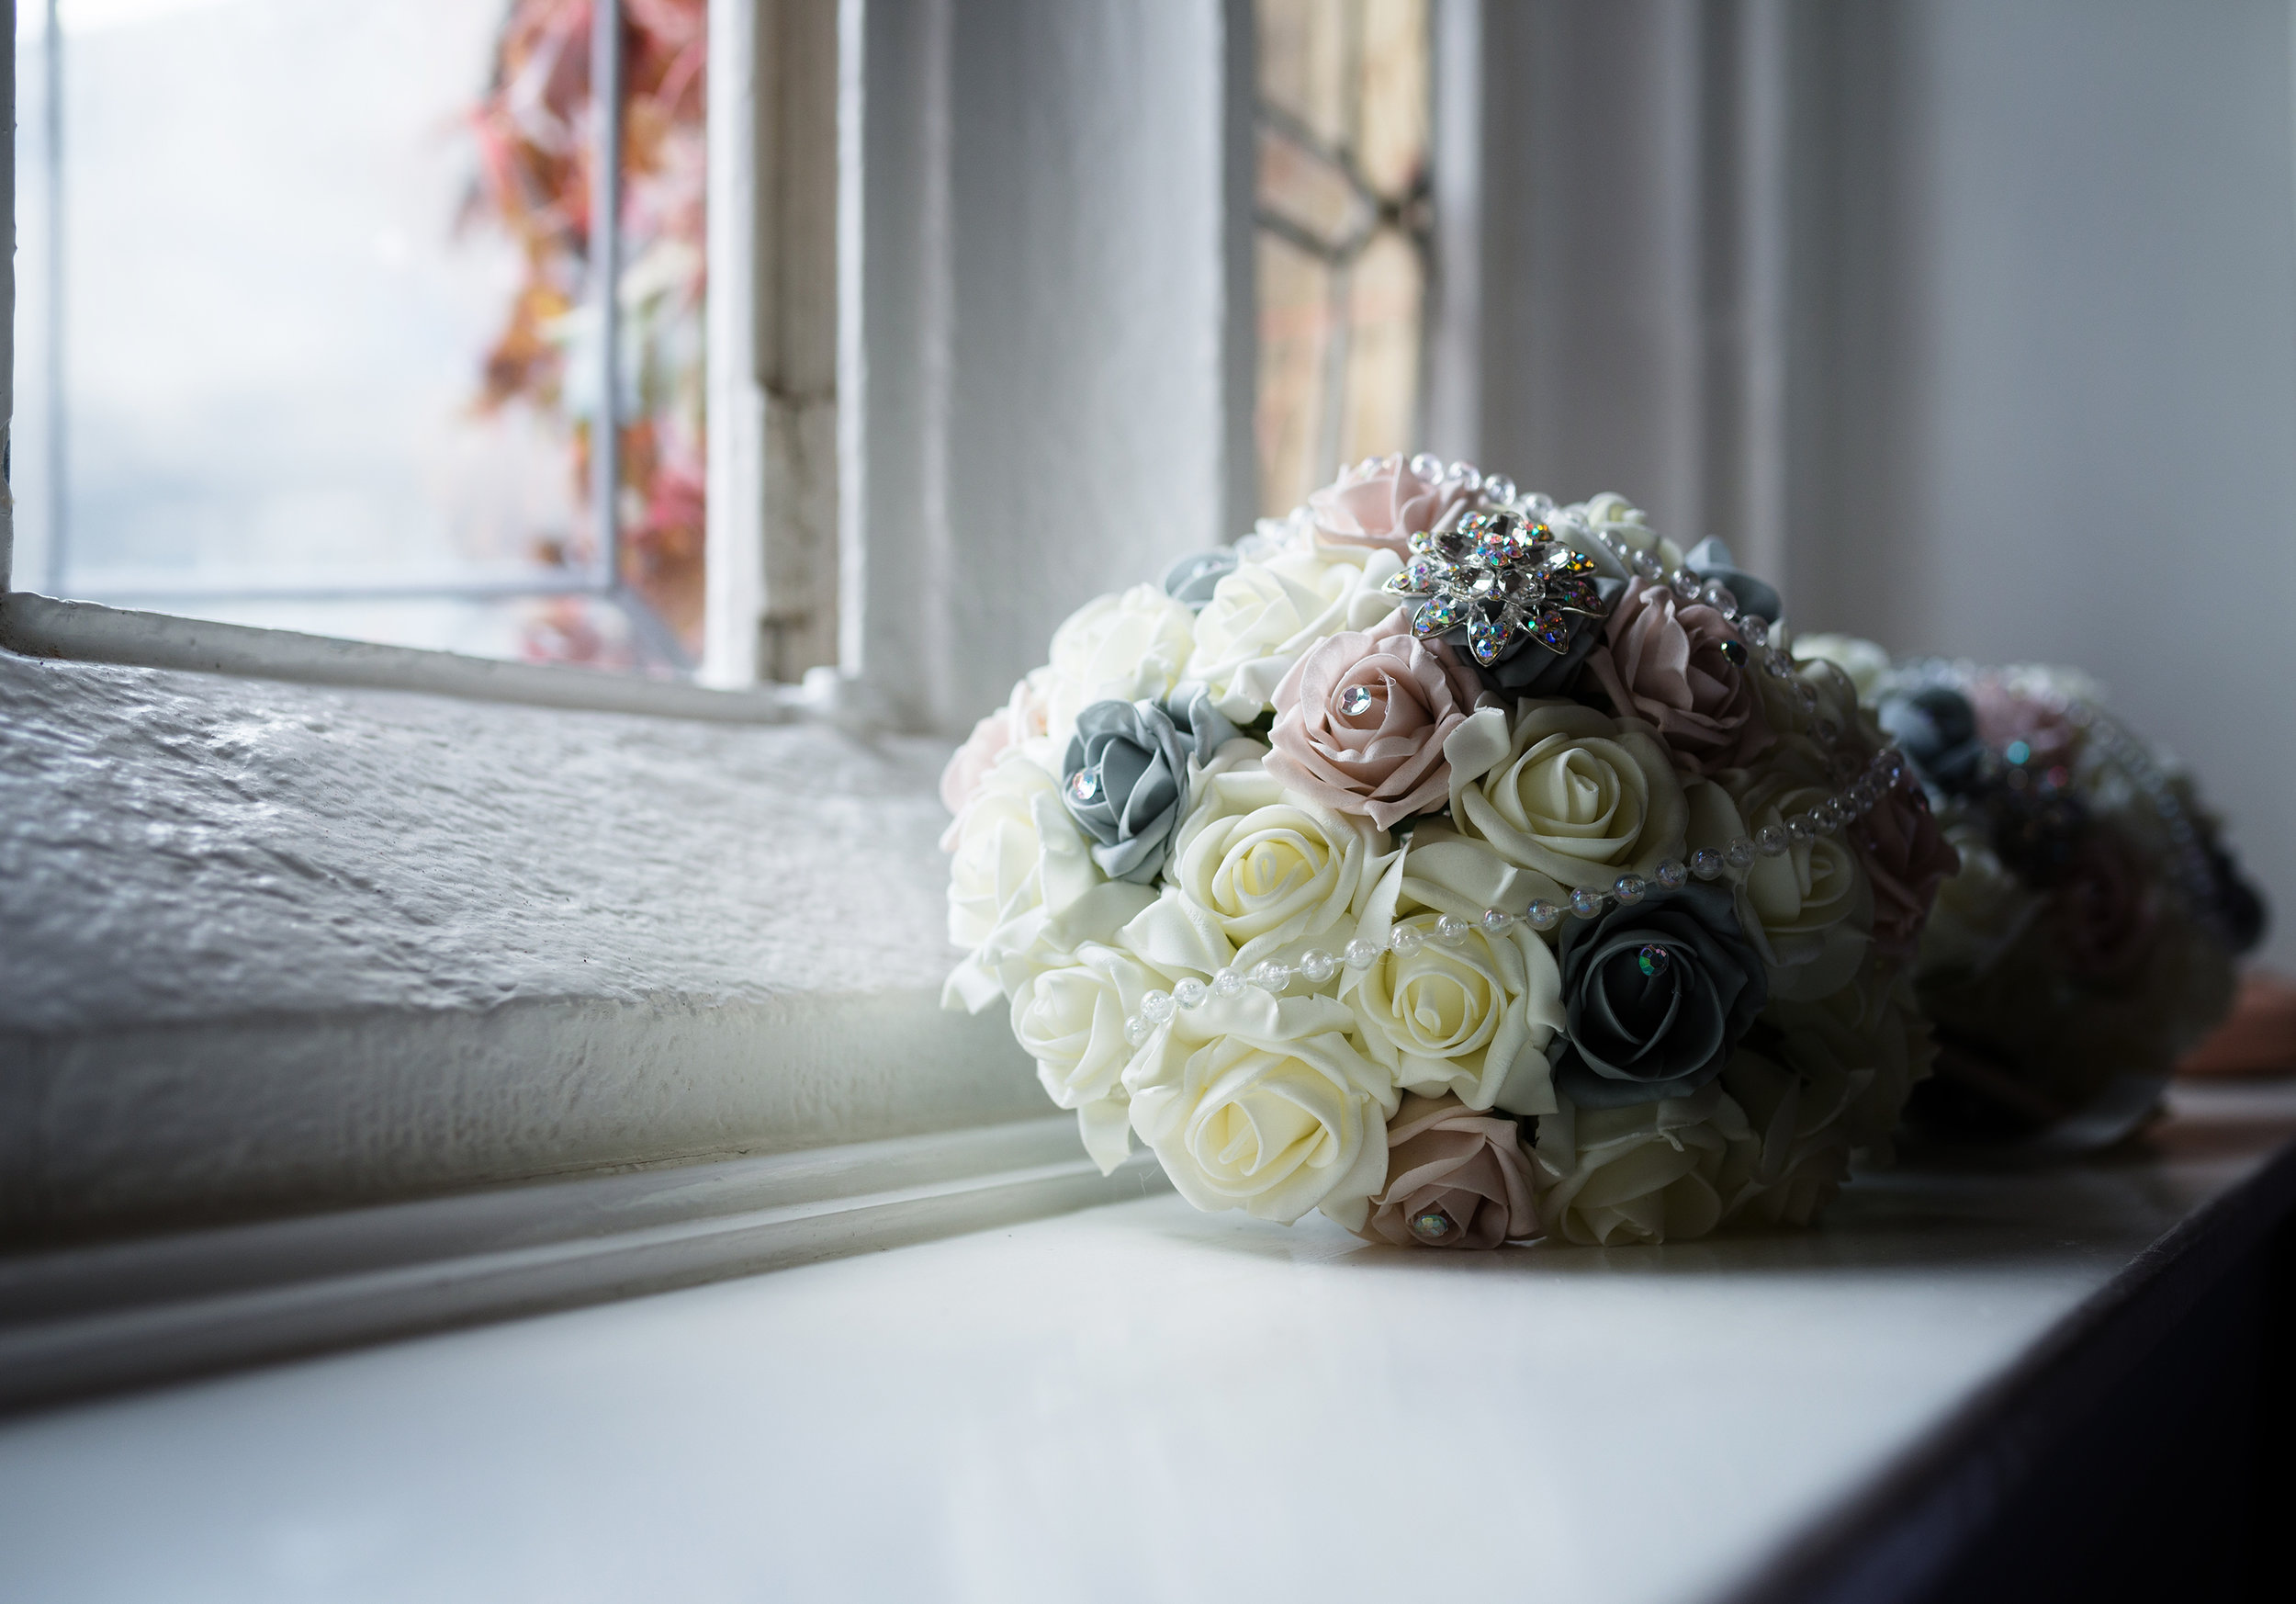 Bridal bouquet on a window ledge